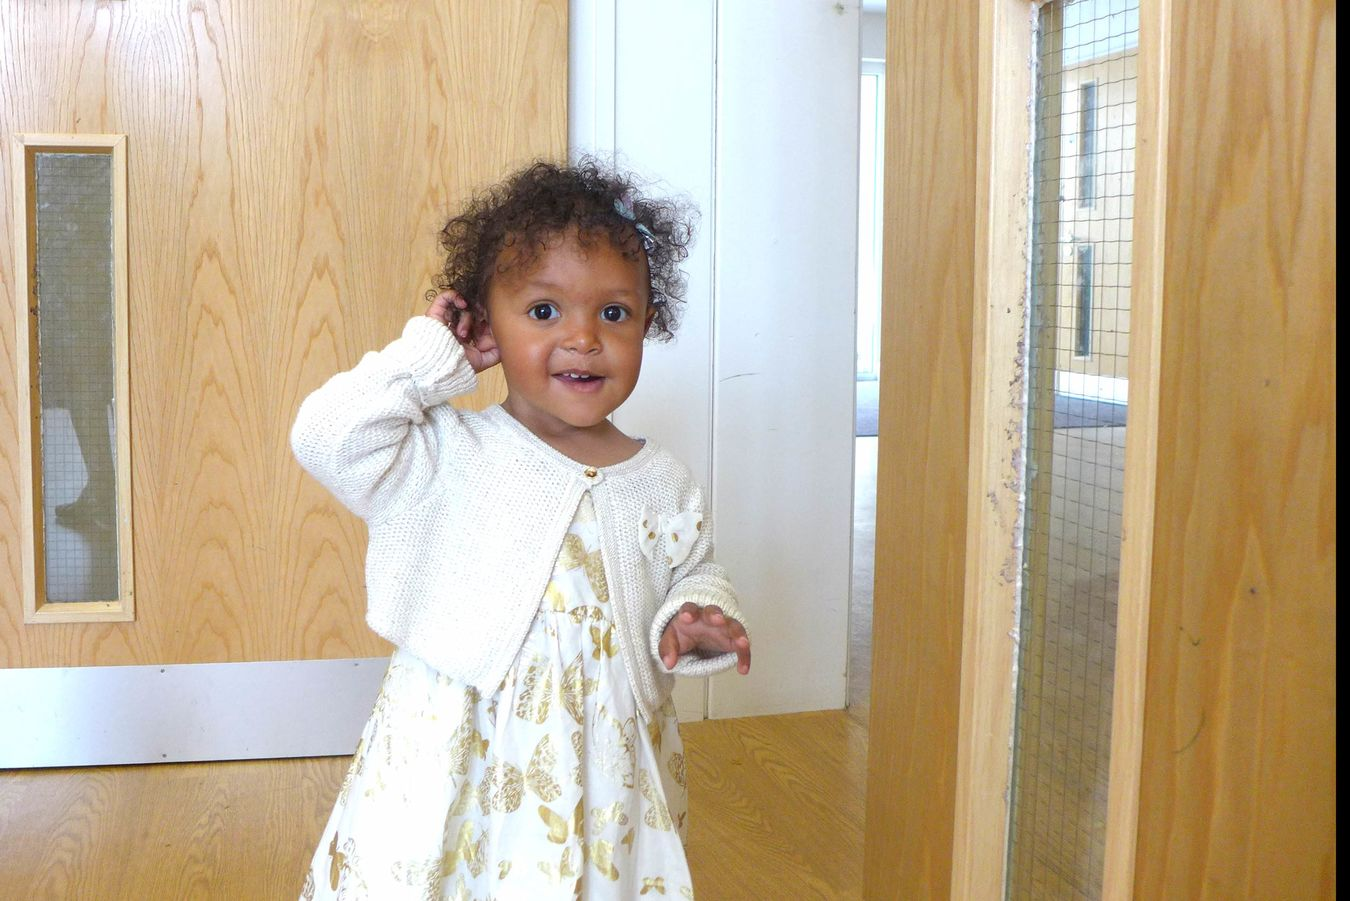 Amazing little girl Amazing View Bimba Caffè Latte Child Curly Hair Cute Daughter Expression Little Girl Mixed Race Nice Day Portrait Walking Girl White Dress